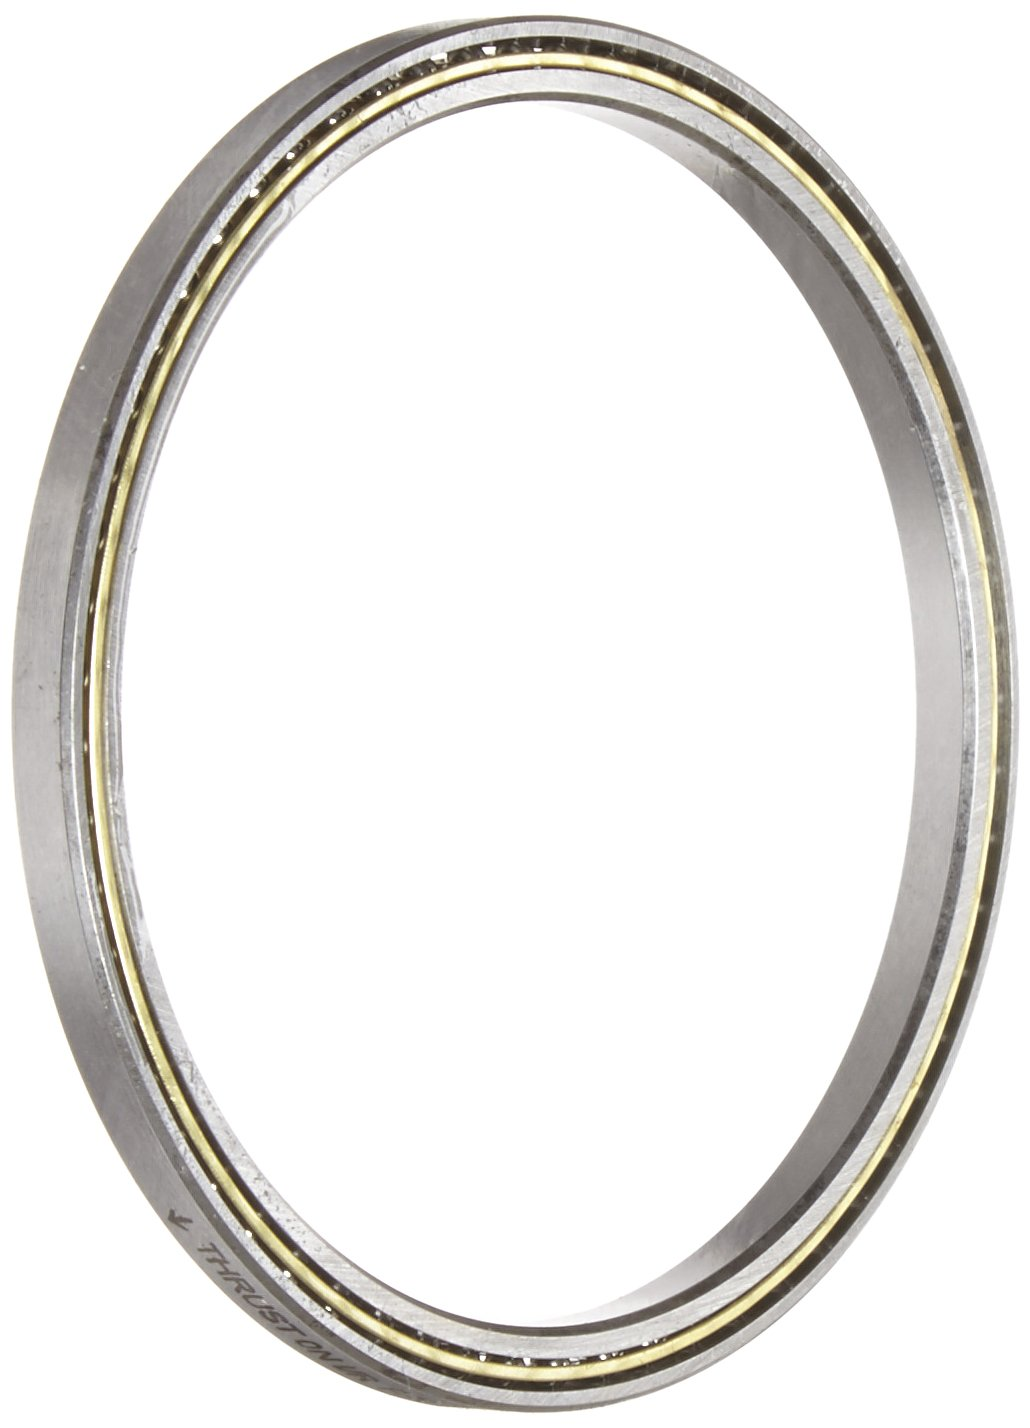 RBC KB025AR0 Thin Section Ball Bearing 2.5 Bore x 3.125 OD x 0.312 Width Angular A-Type Unsealed